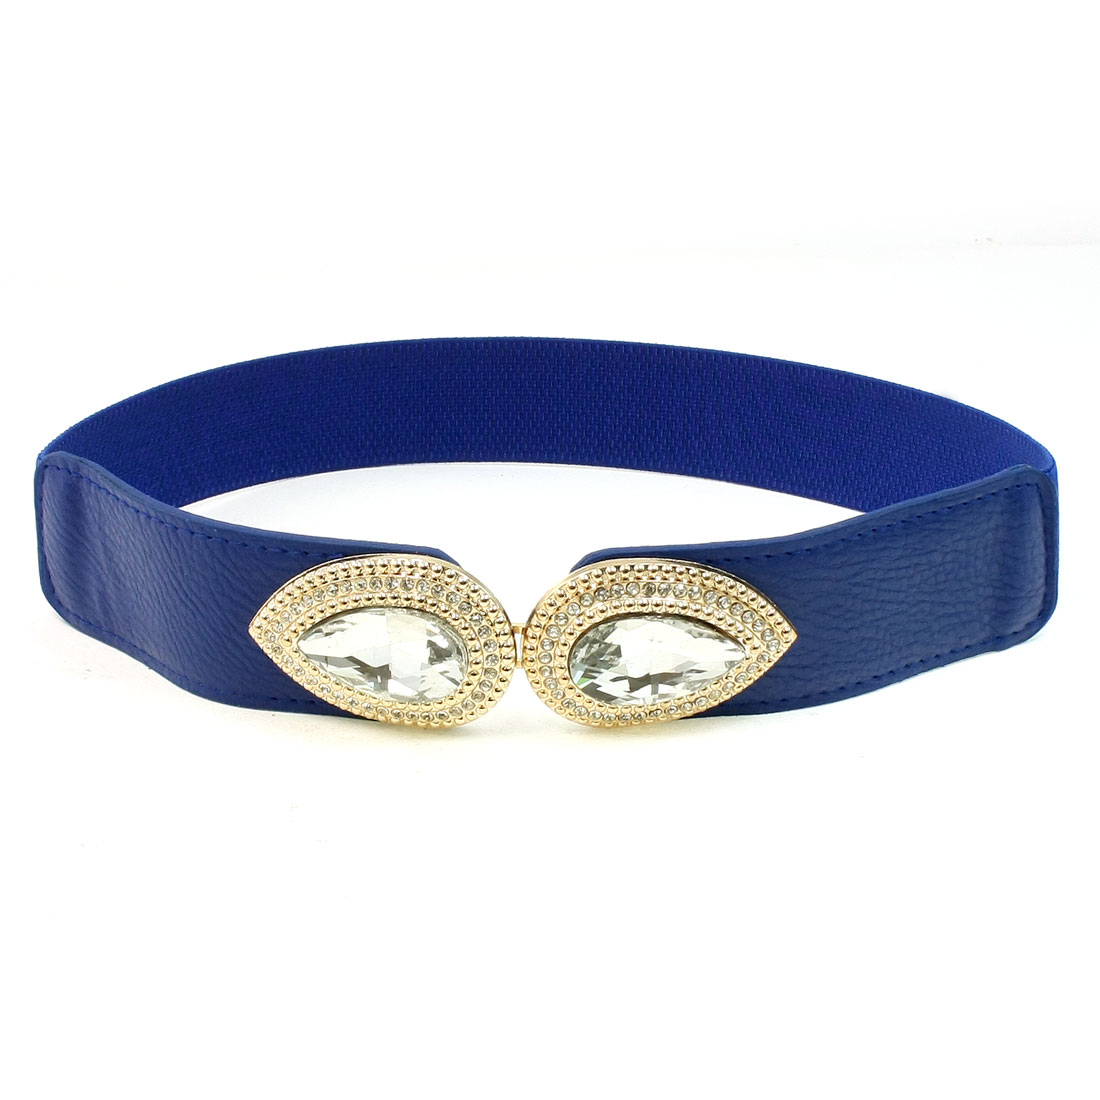 Faux Leather Crystal Metal Interlock Buckle Stretchy Waist Belt Blue for Lady